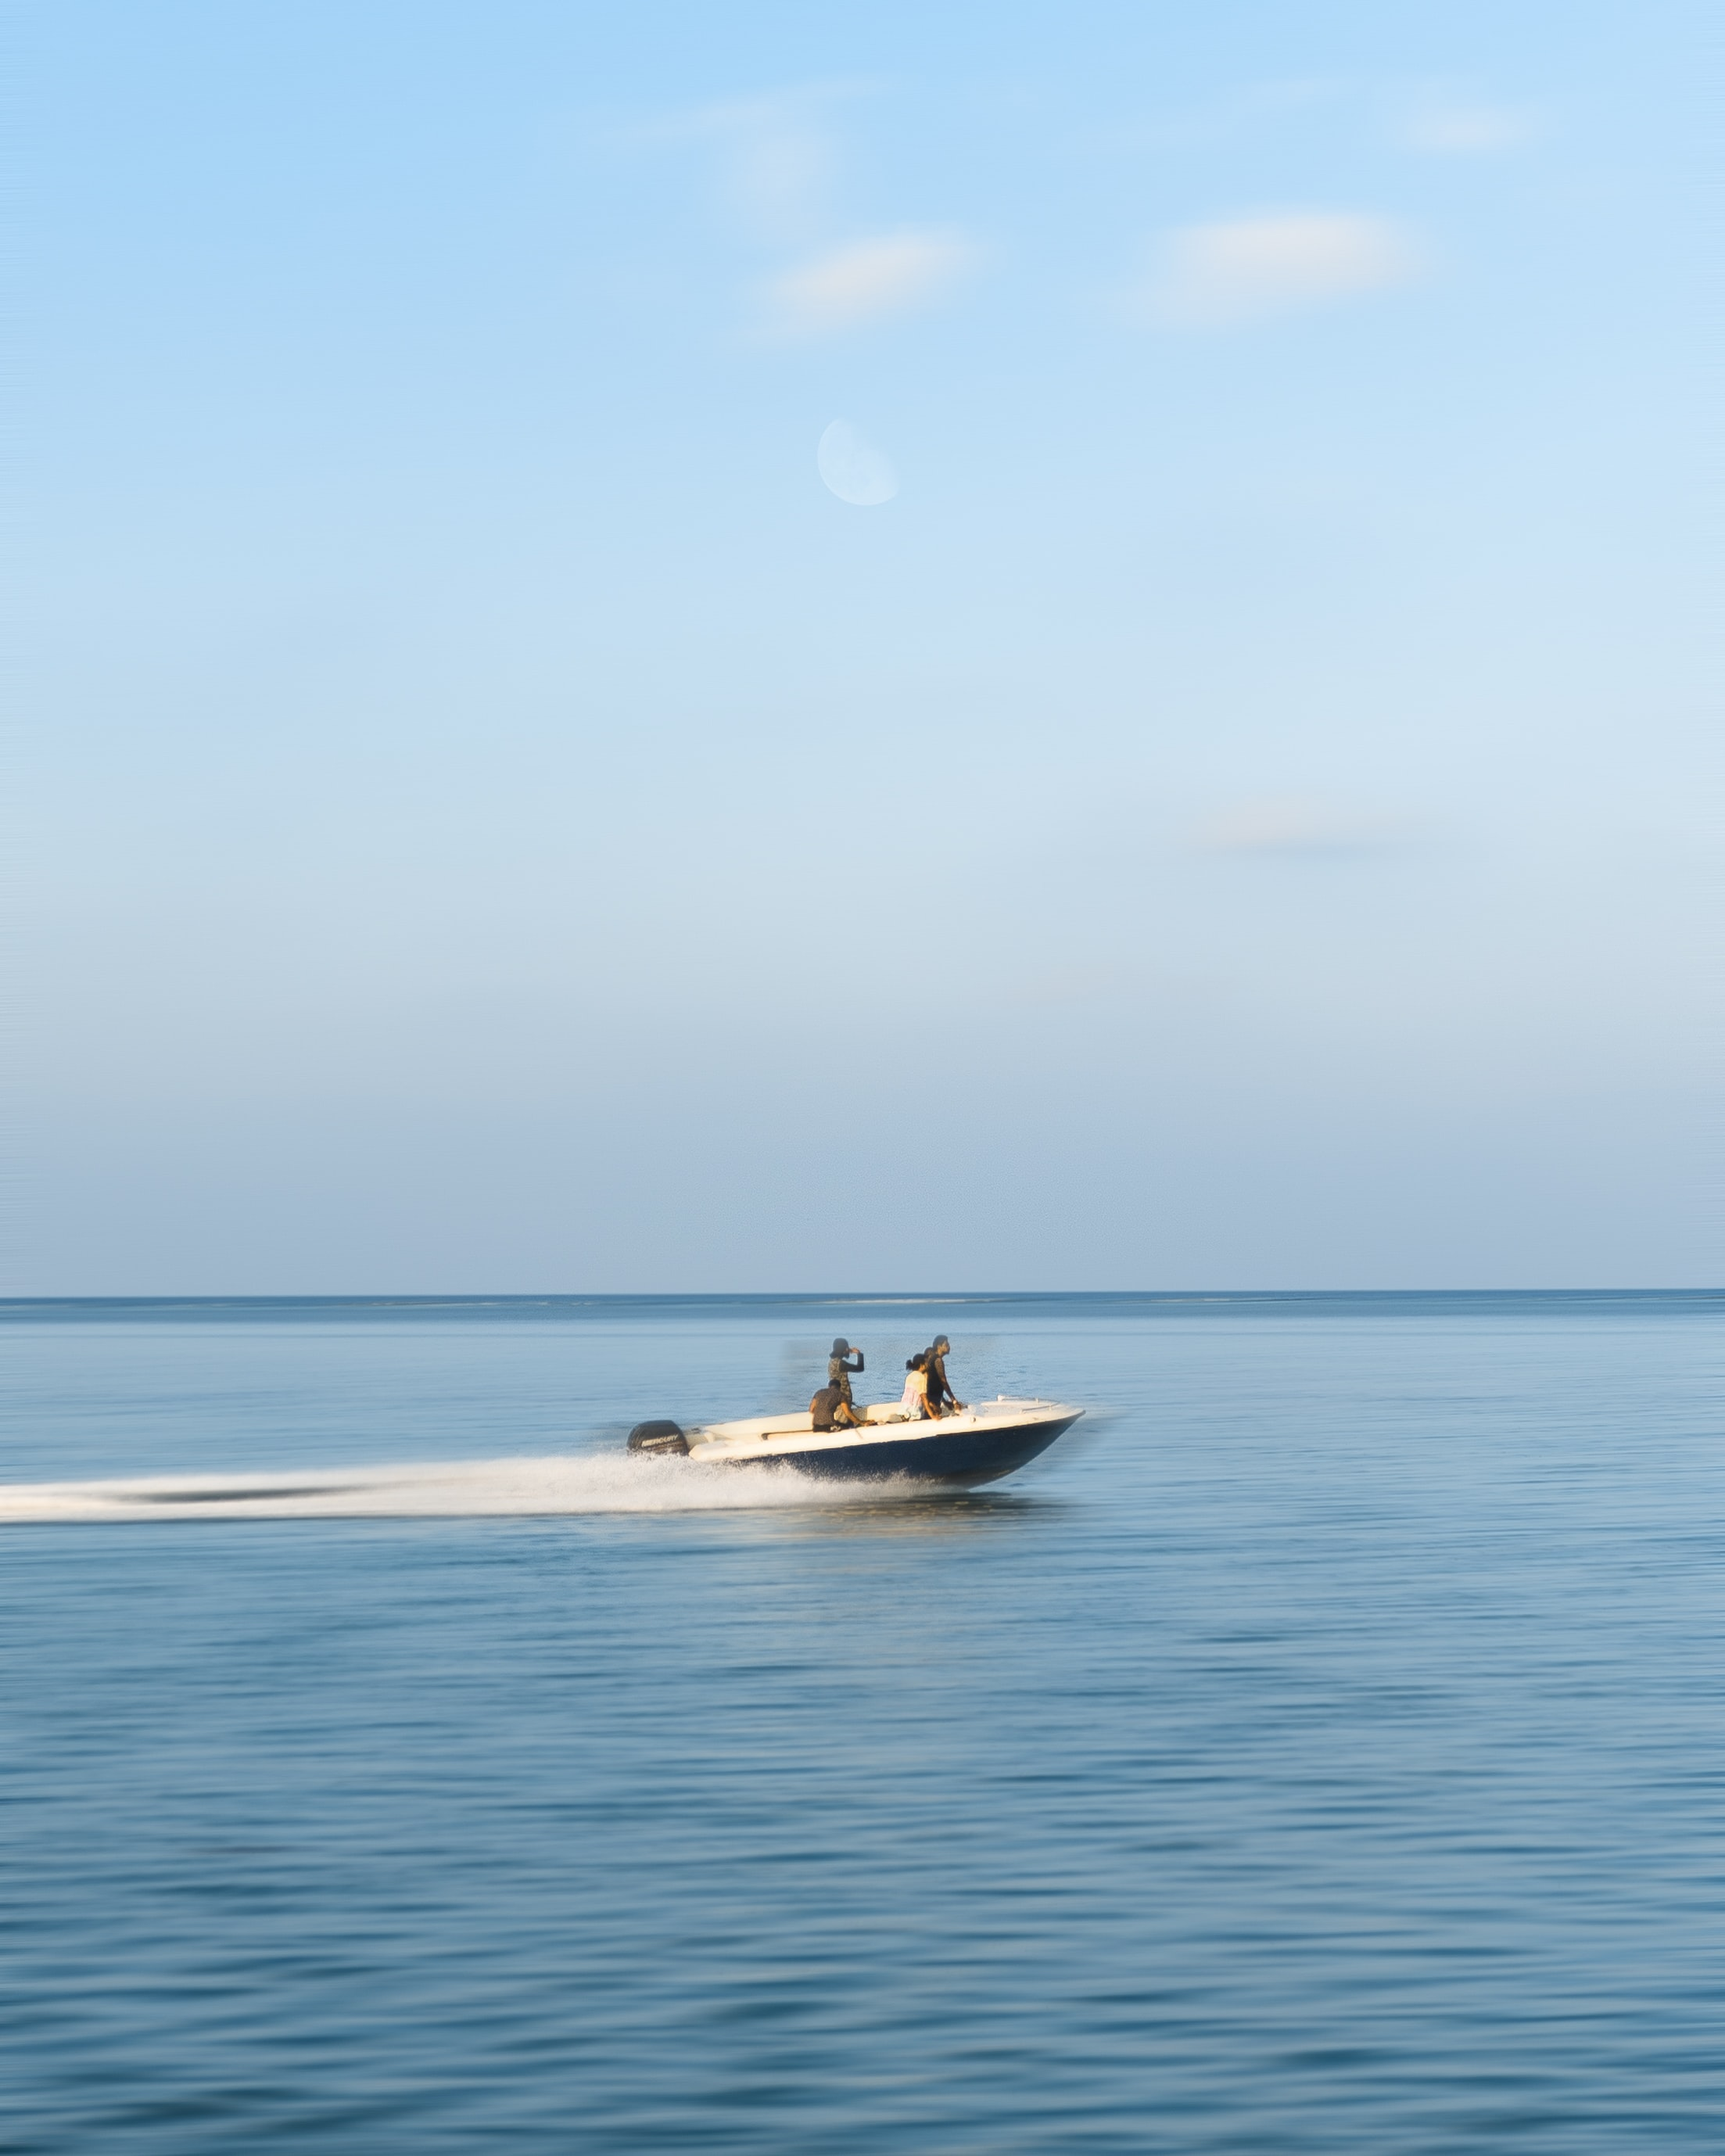 three person riding on motorboat under white clouds at daytime